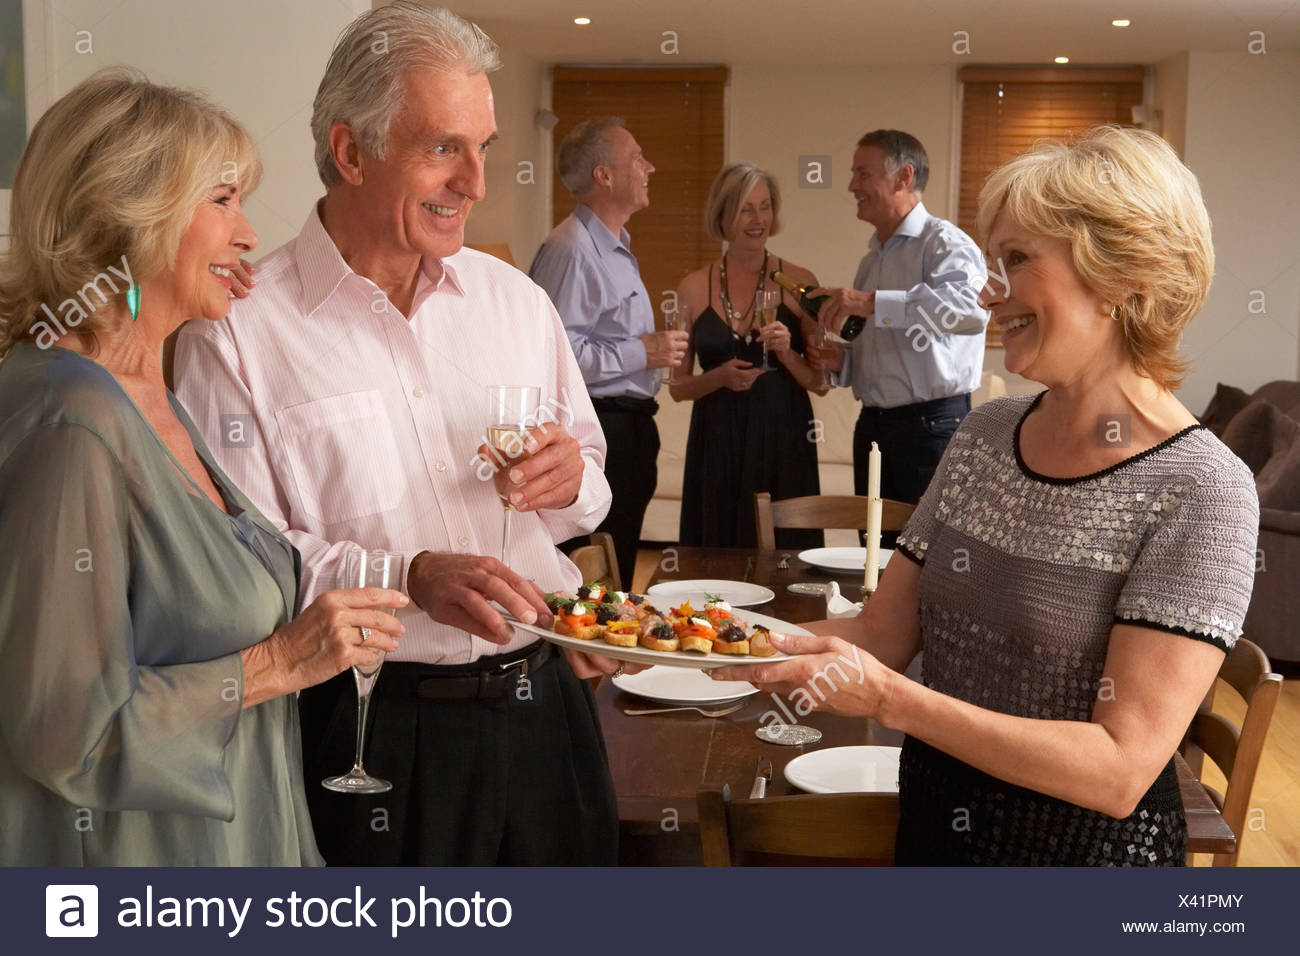 Woman Serving Hors D'oeuvres To Her Guests At A Dinner Party - Stock Image